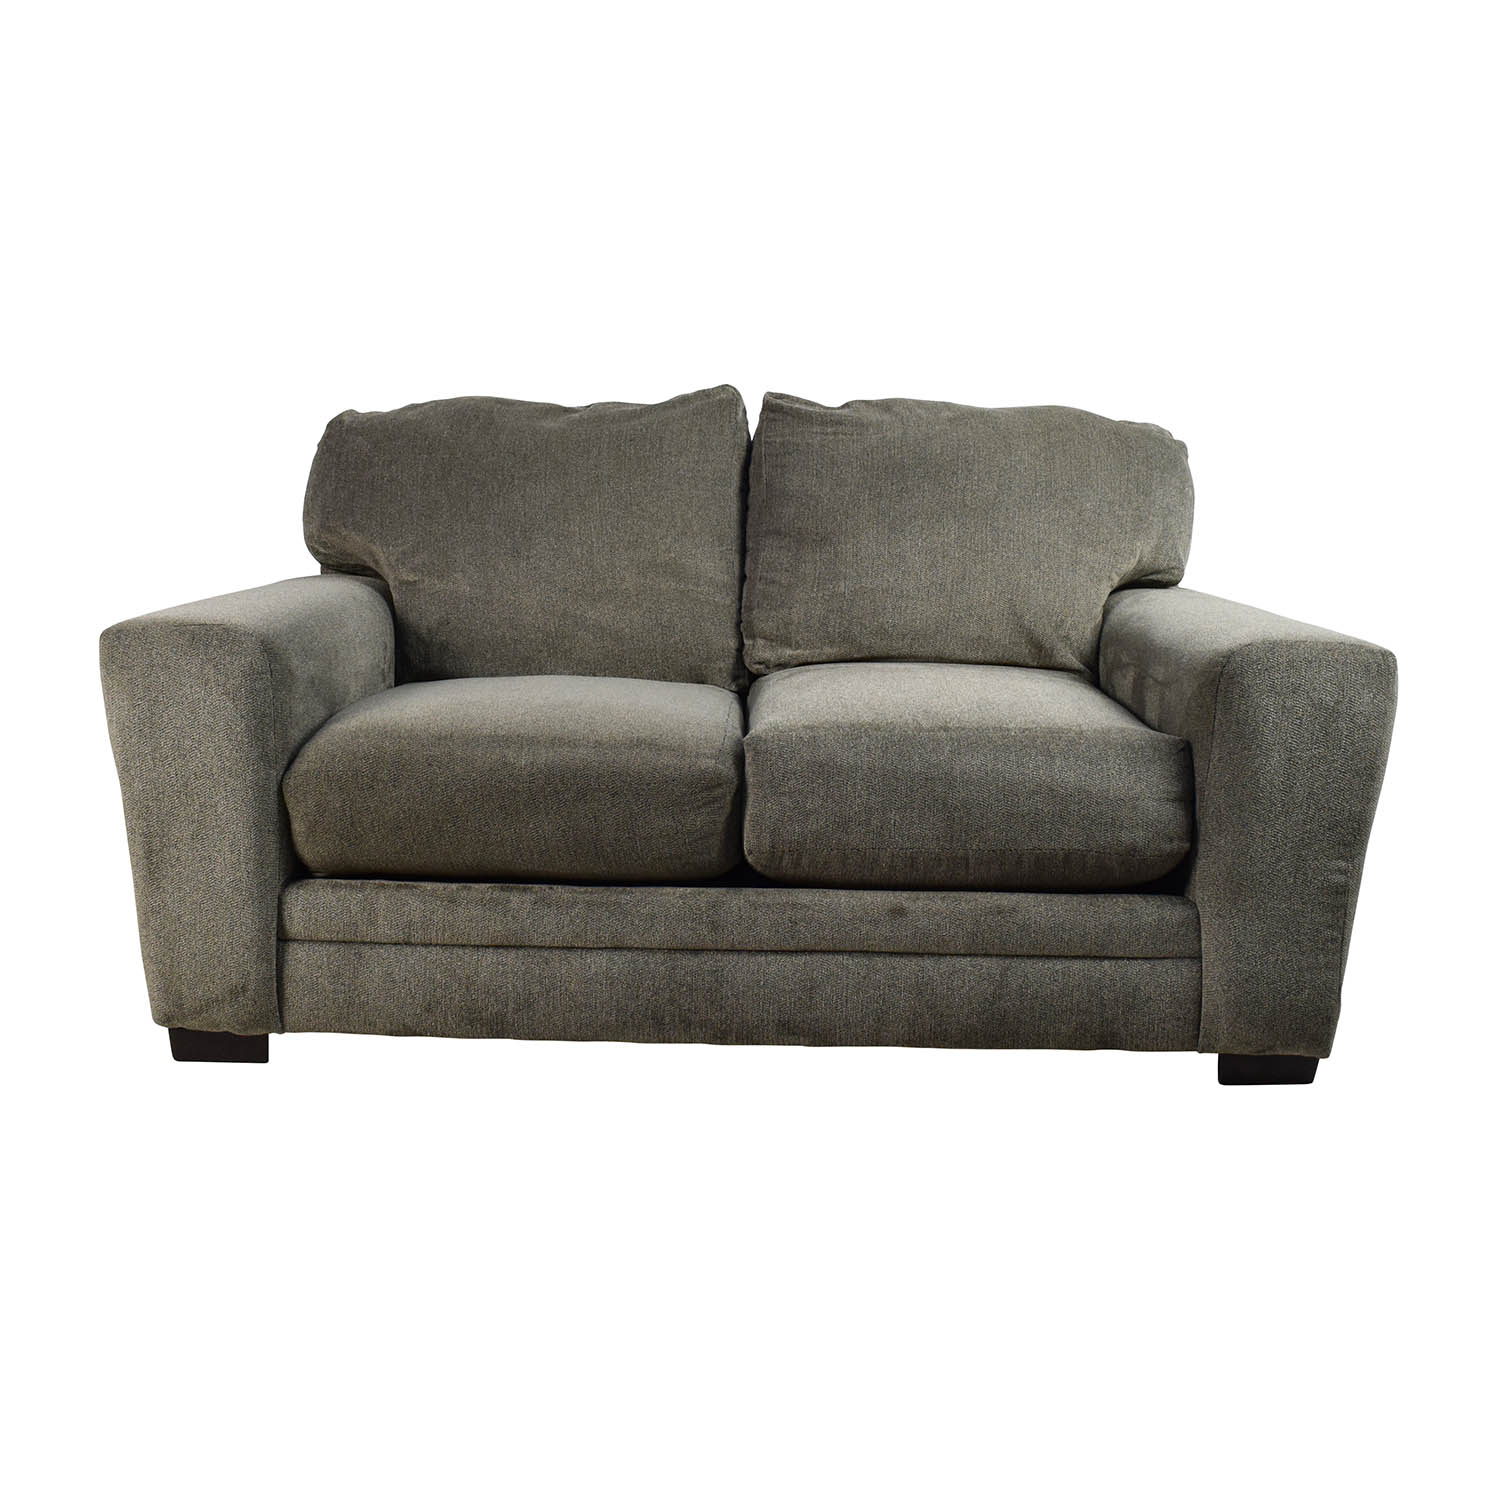 Bobs Furniture Sofas Supernova Reclining Sectional Bob S Furniture Thesofa